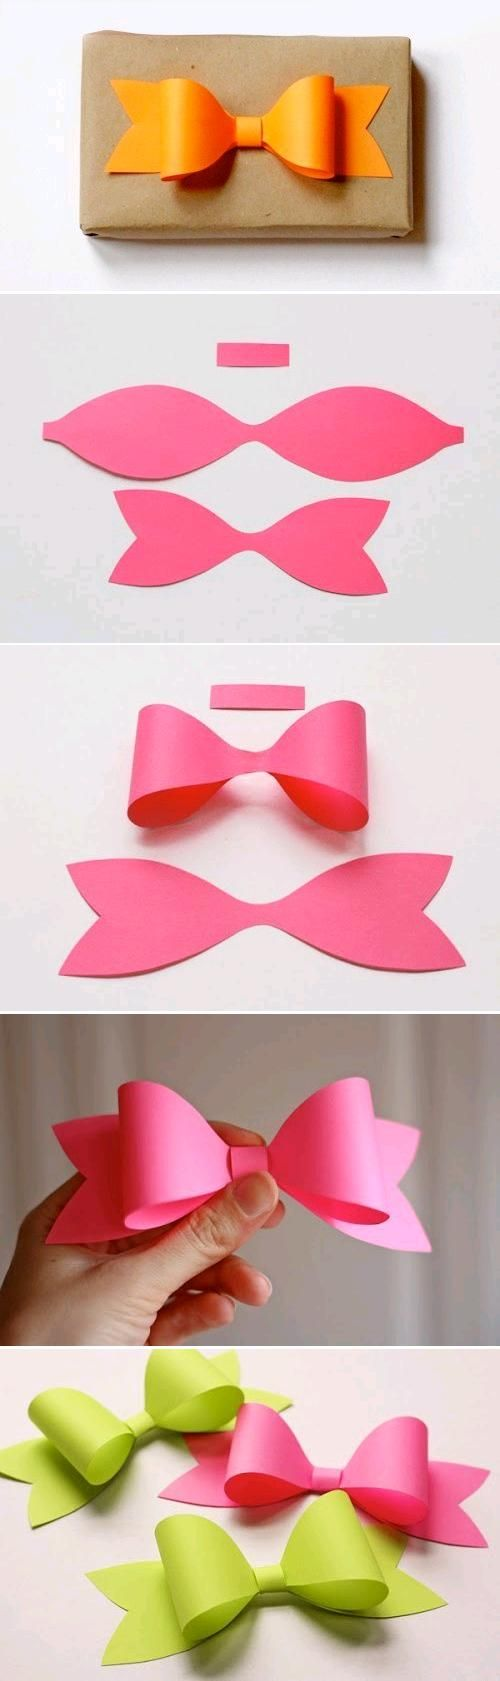 DIY How to make a bow for a gift